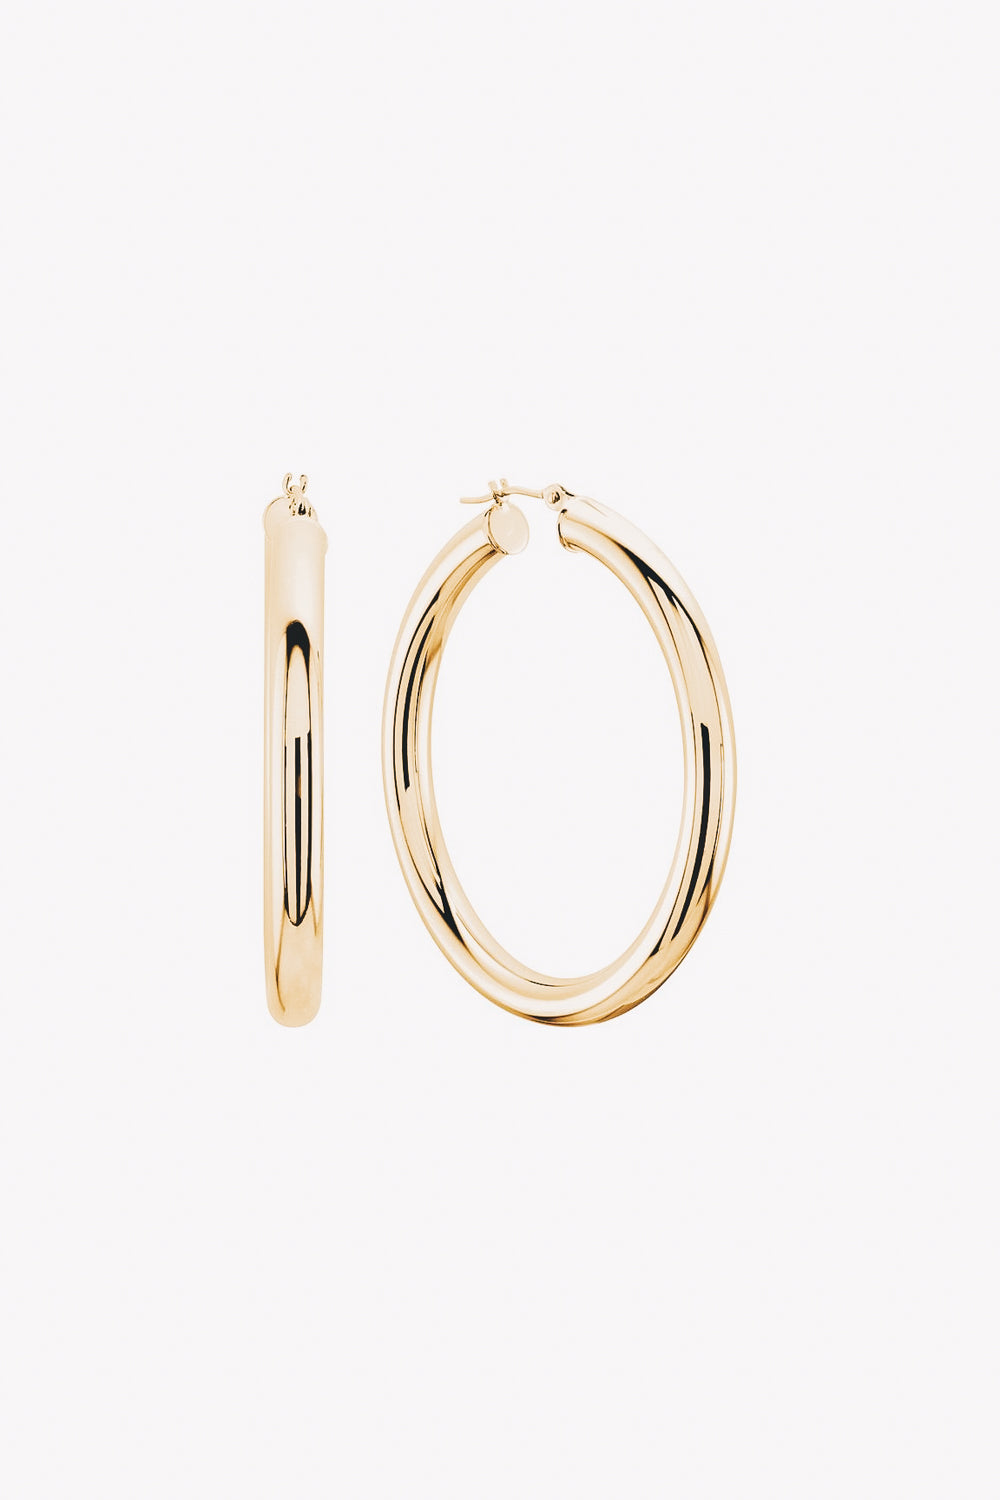 14k gold tube hoop earrings